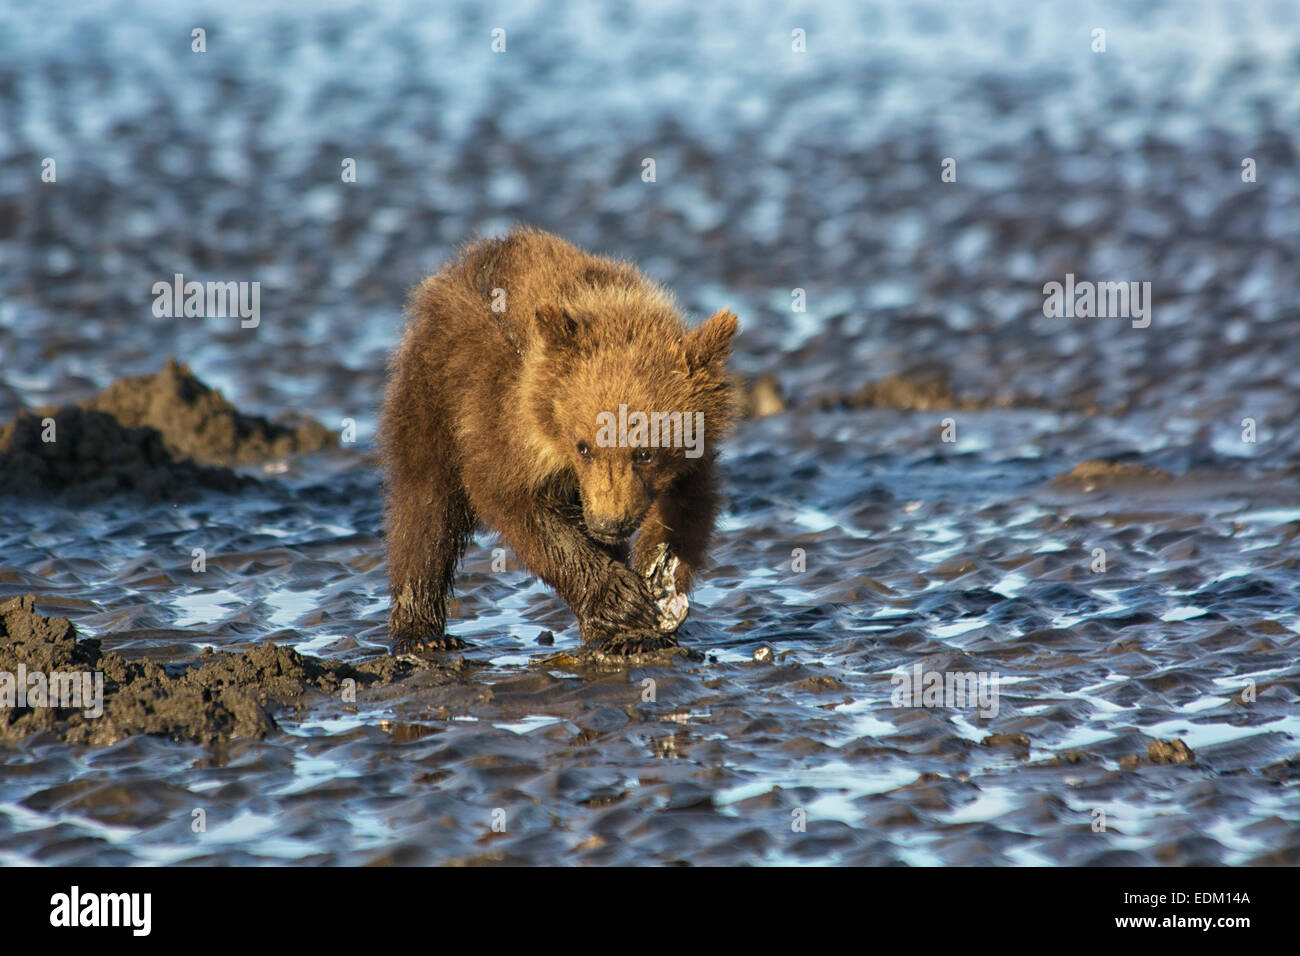 Small Grizzly Bear Spring Cub, Ursus arctos, clamming in the tidal flats of the Cook Inlet, Alaska, USA Stock Photo